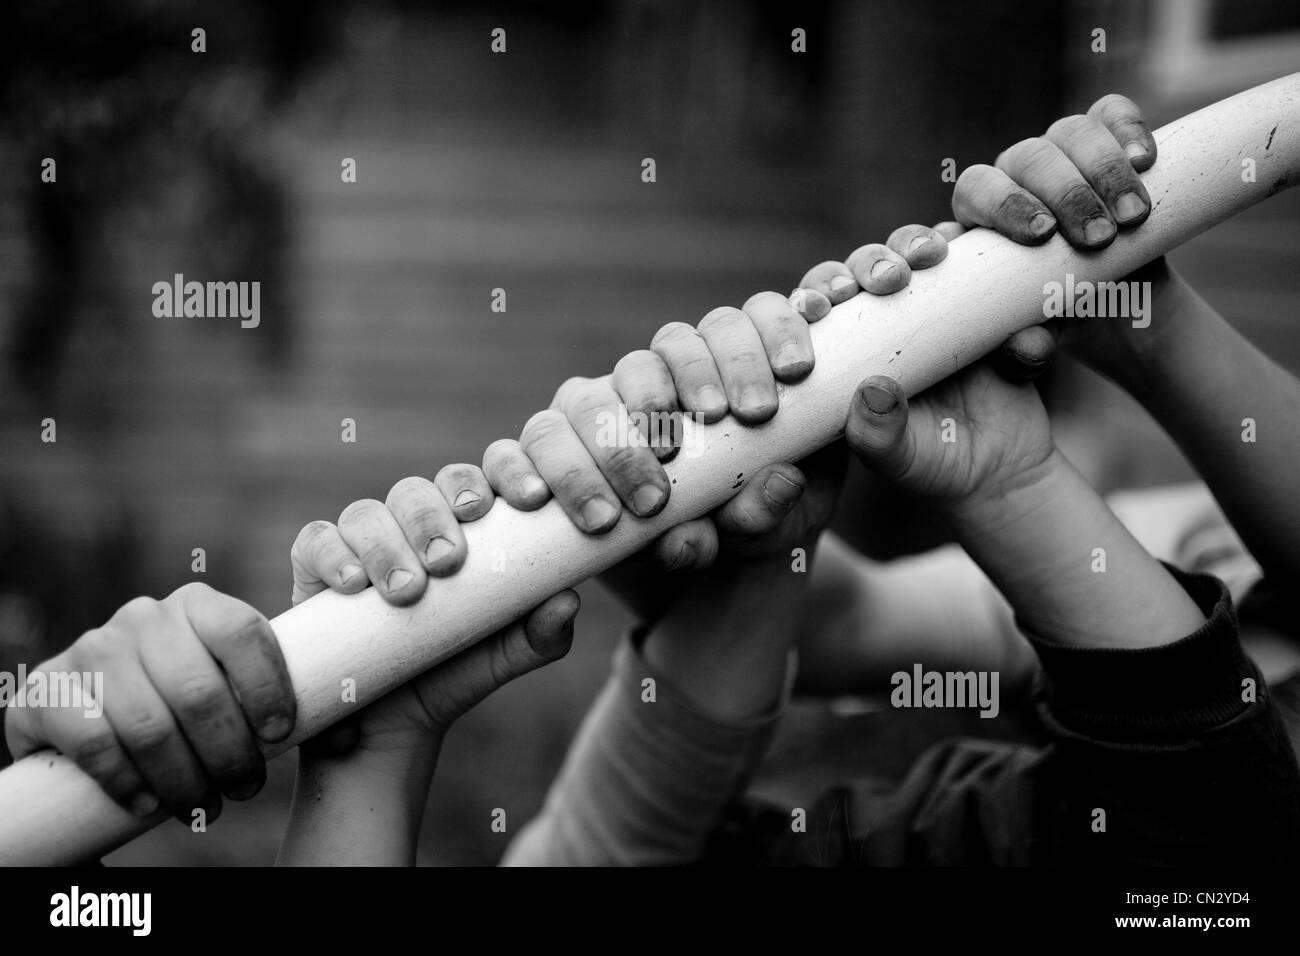 Children  holding on to railing - Stock Image